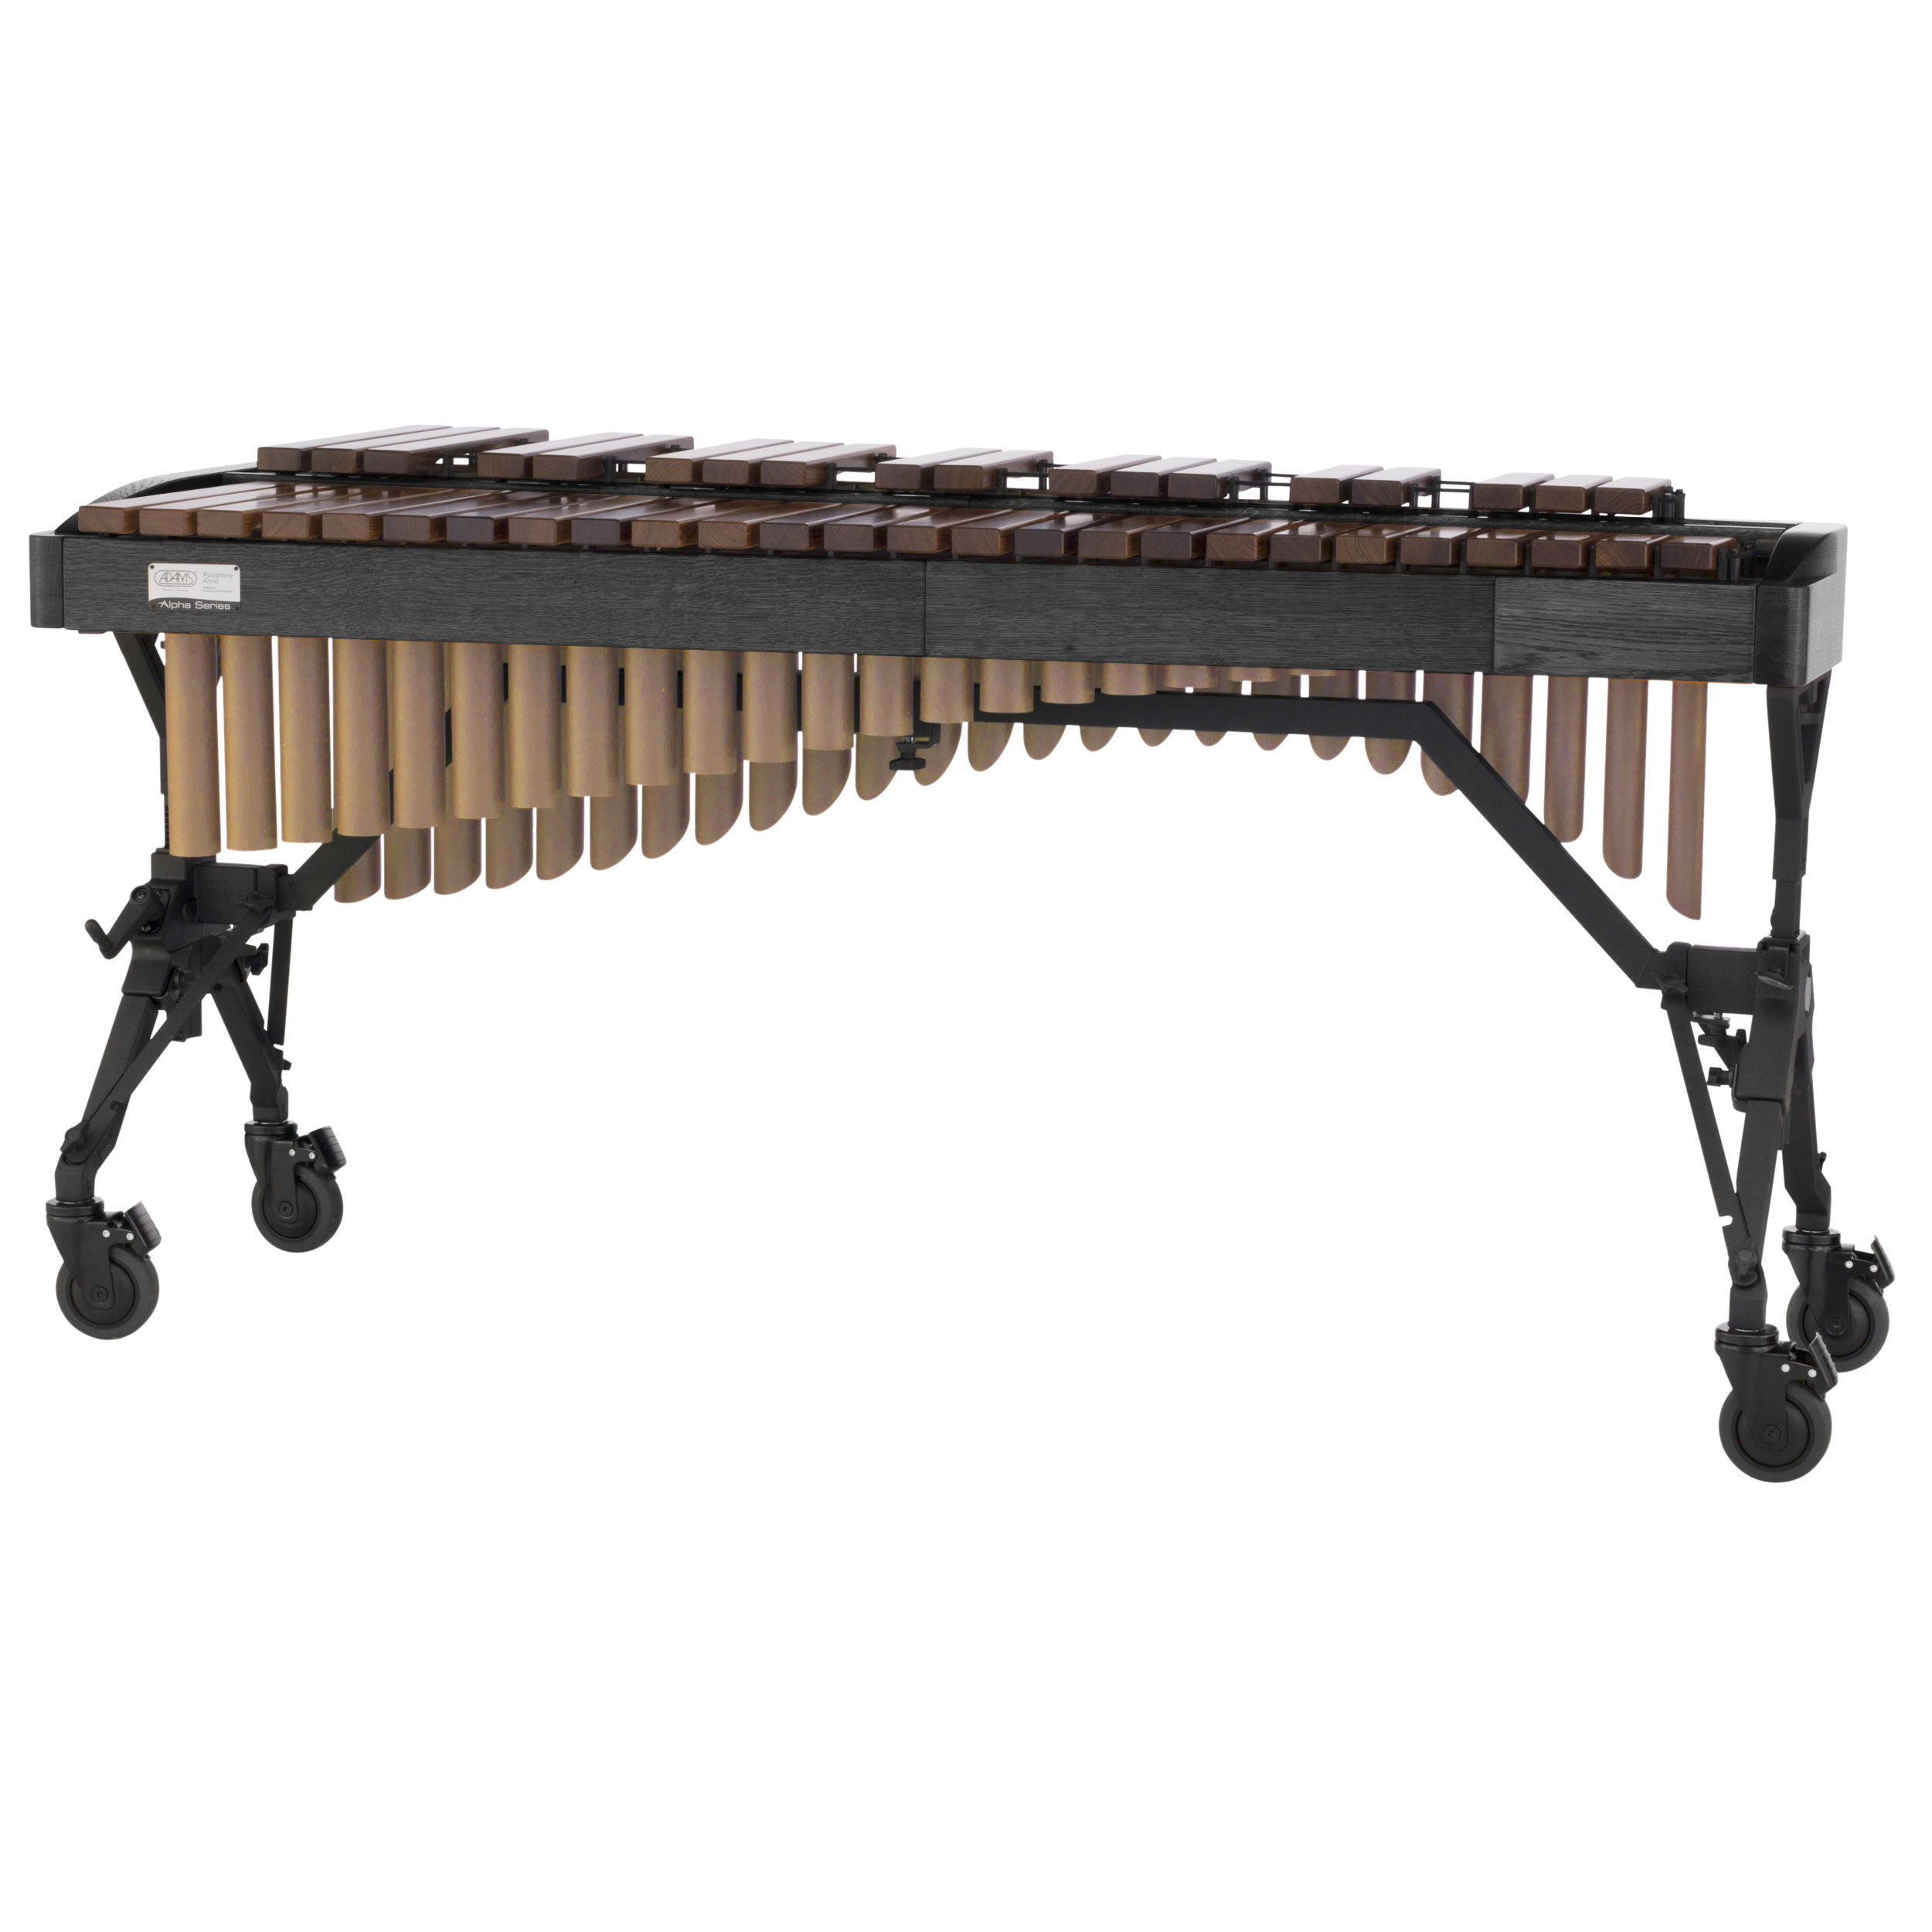 Adams 3.5 Octave Alpha Rosewood Xylophone with Graphite Oak Rails & Satin Gold Resonators